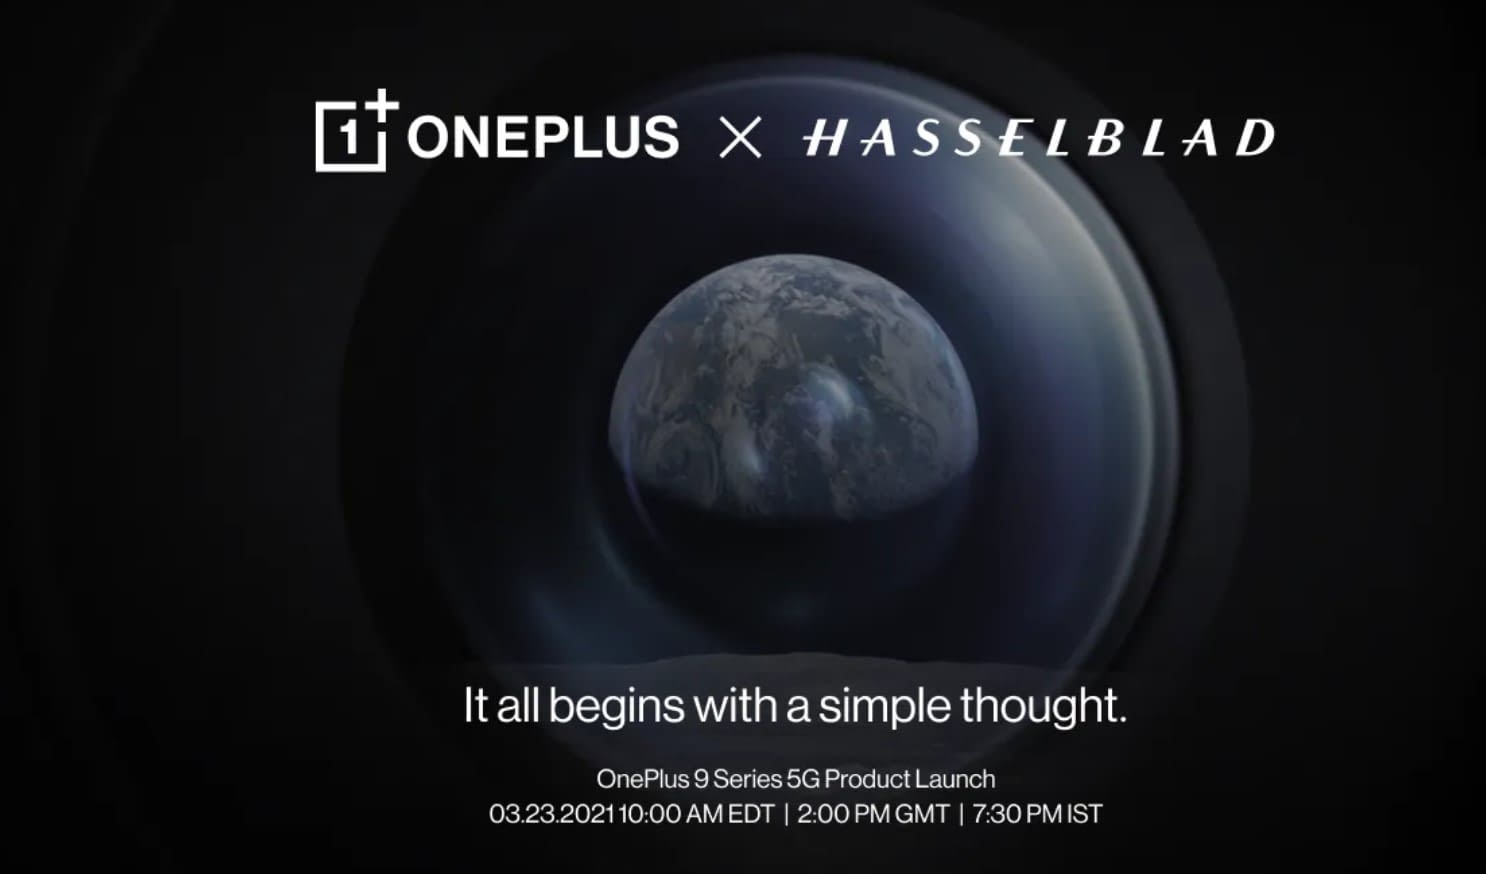 OnePlus 9 series launch date poster